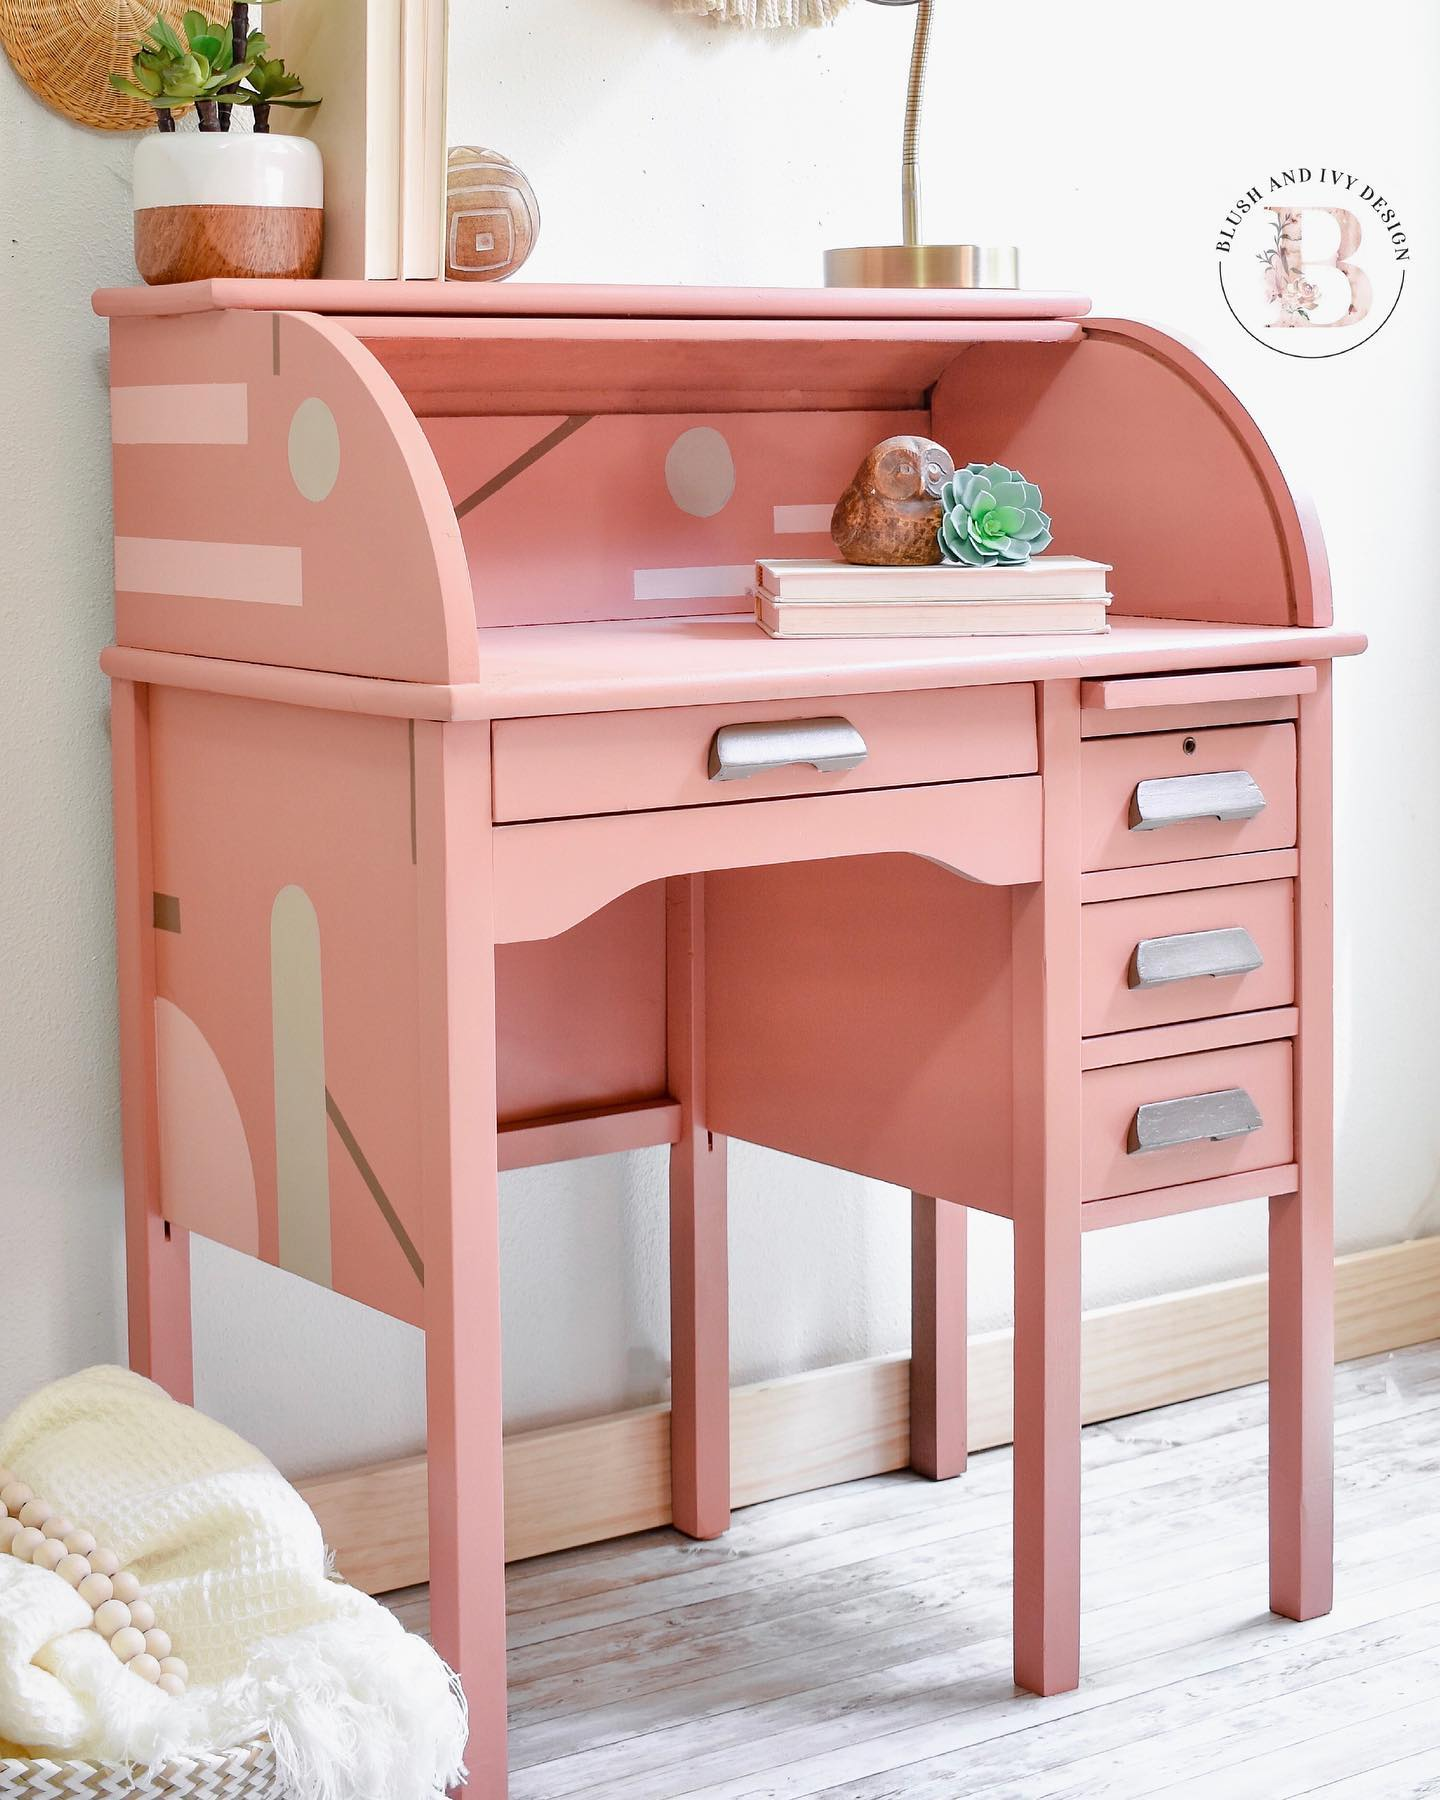 Vintage Roll Top Desk in Peachy Keen with Geometric Designs